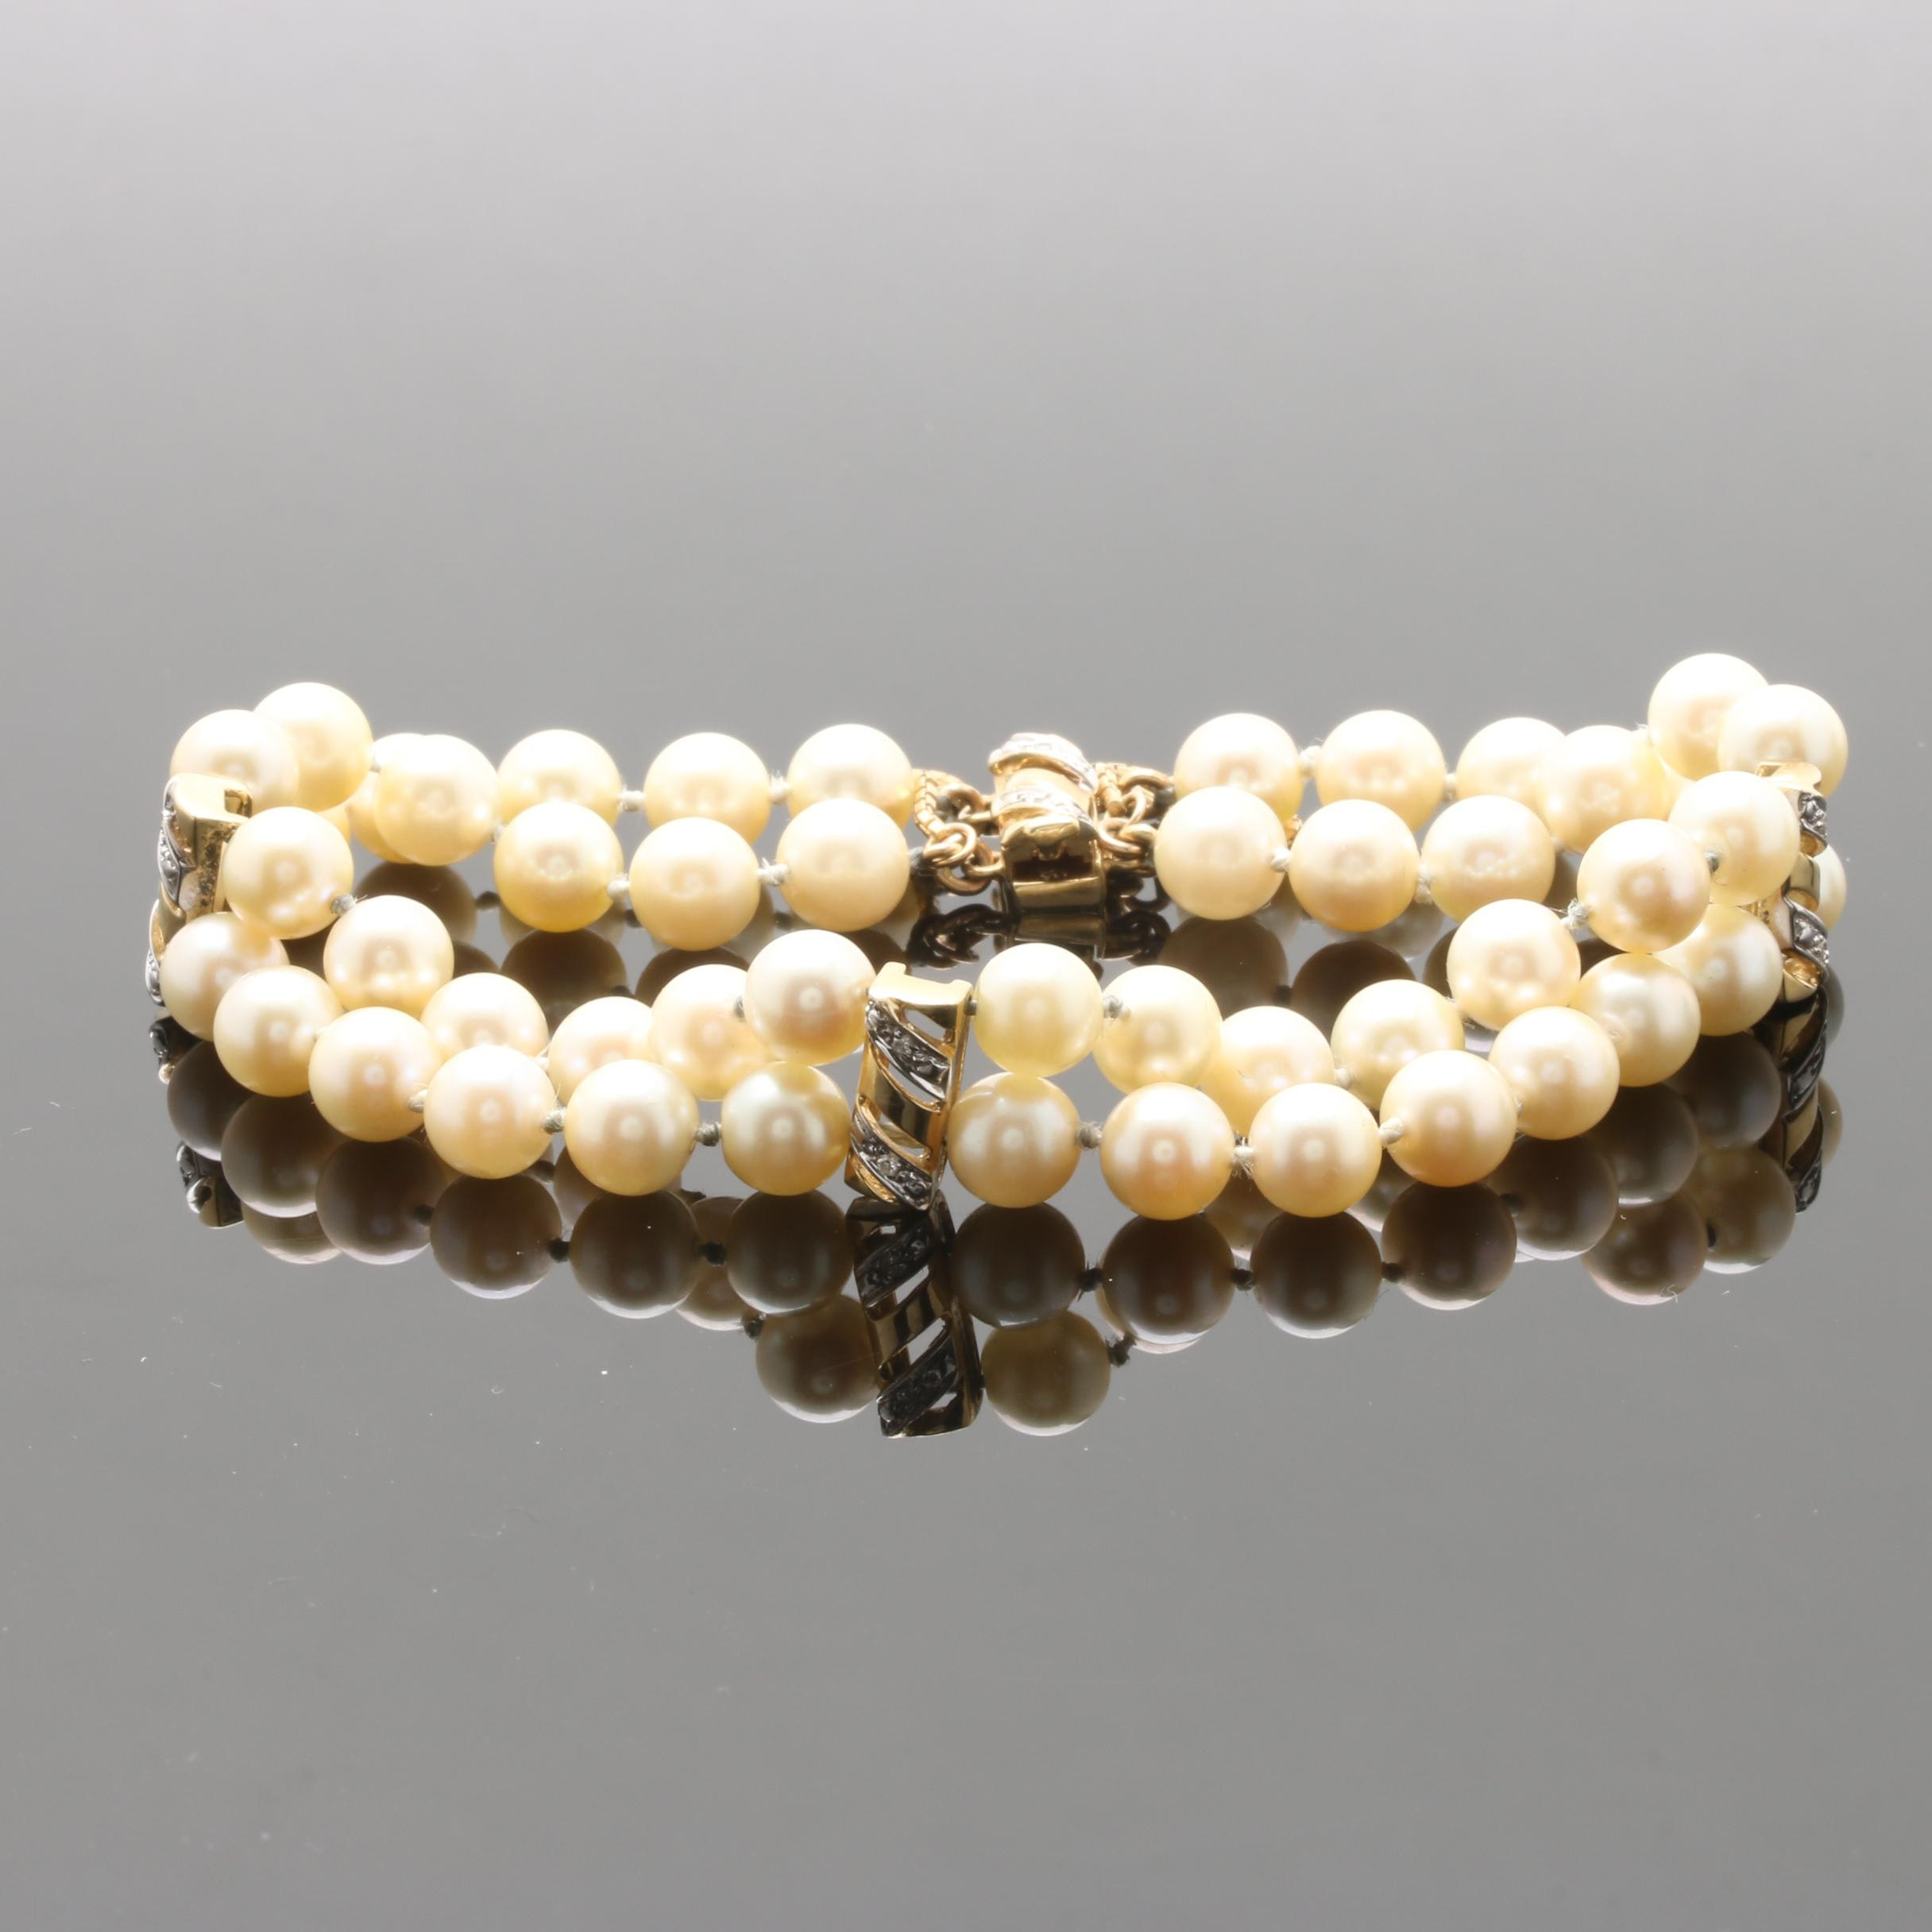 14K Yellow Gold Cultured Pearl and Diamond Bracelet with 18K Yellow Gold Accent